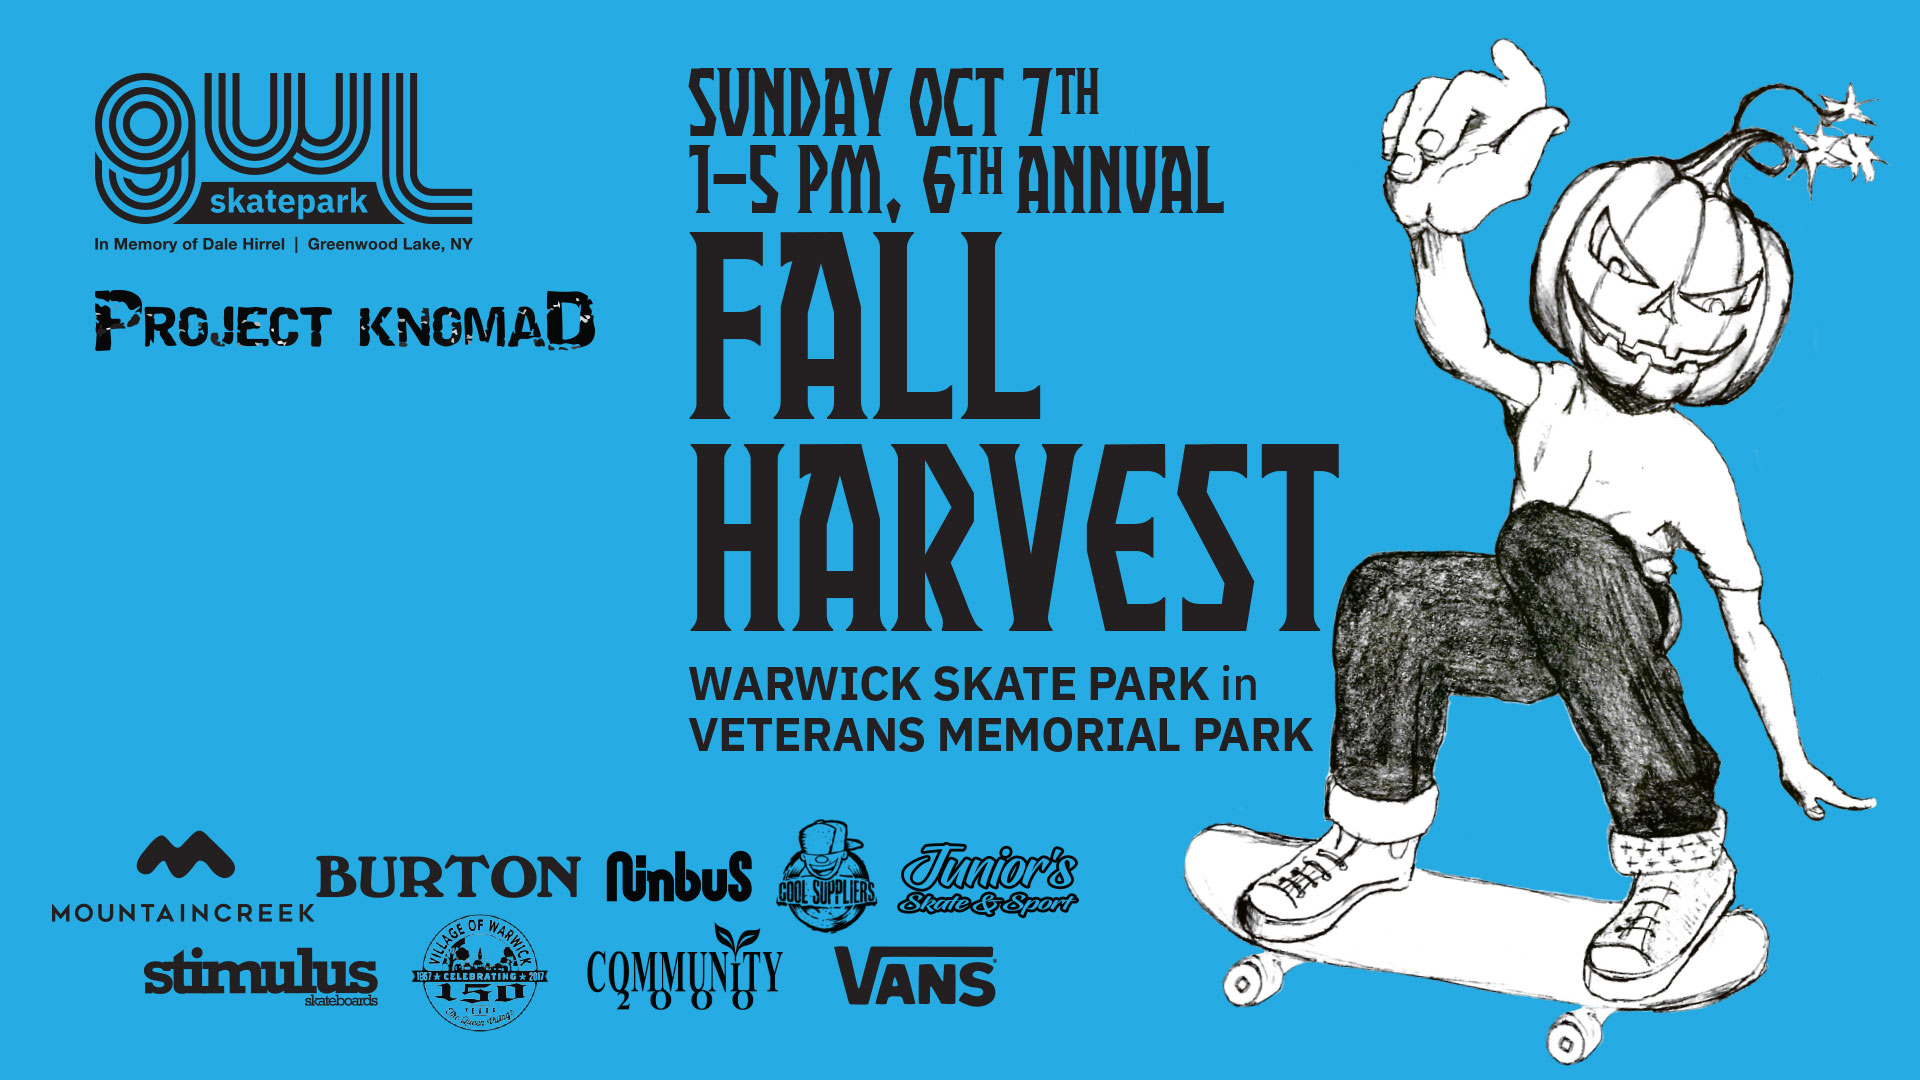 GWLSkatePark fundraising event, 6TH Annual Fall Harvest Game of Skate, Skate Contest, Veterans Memorial Park, Warwick Skate Park, Project Knomad, Warwick NY